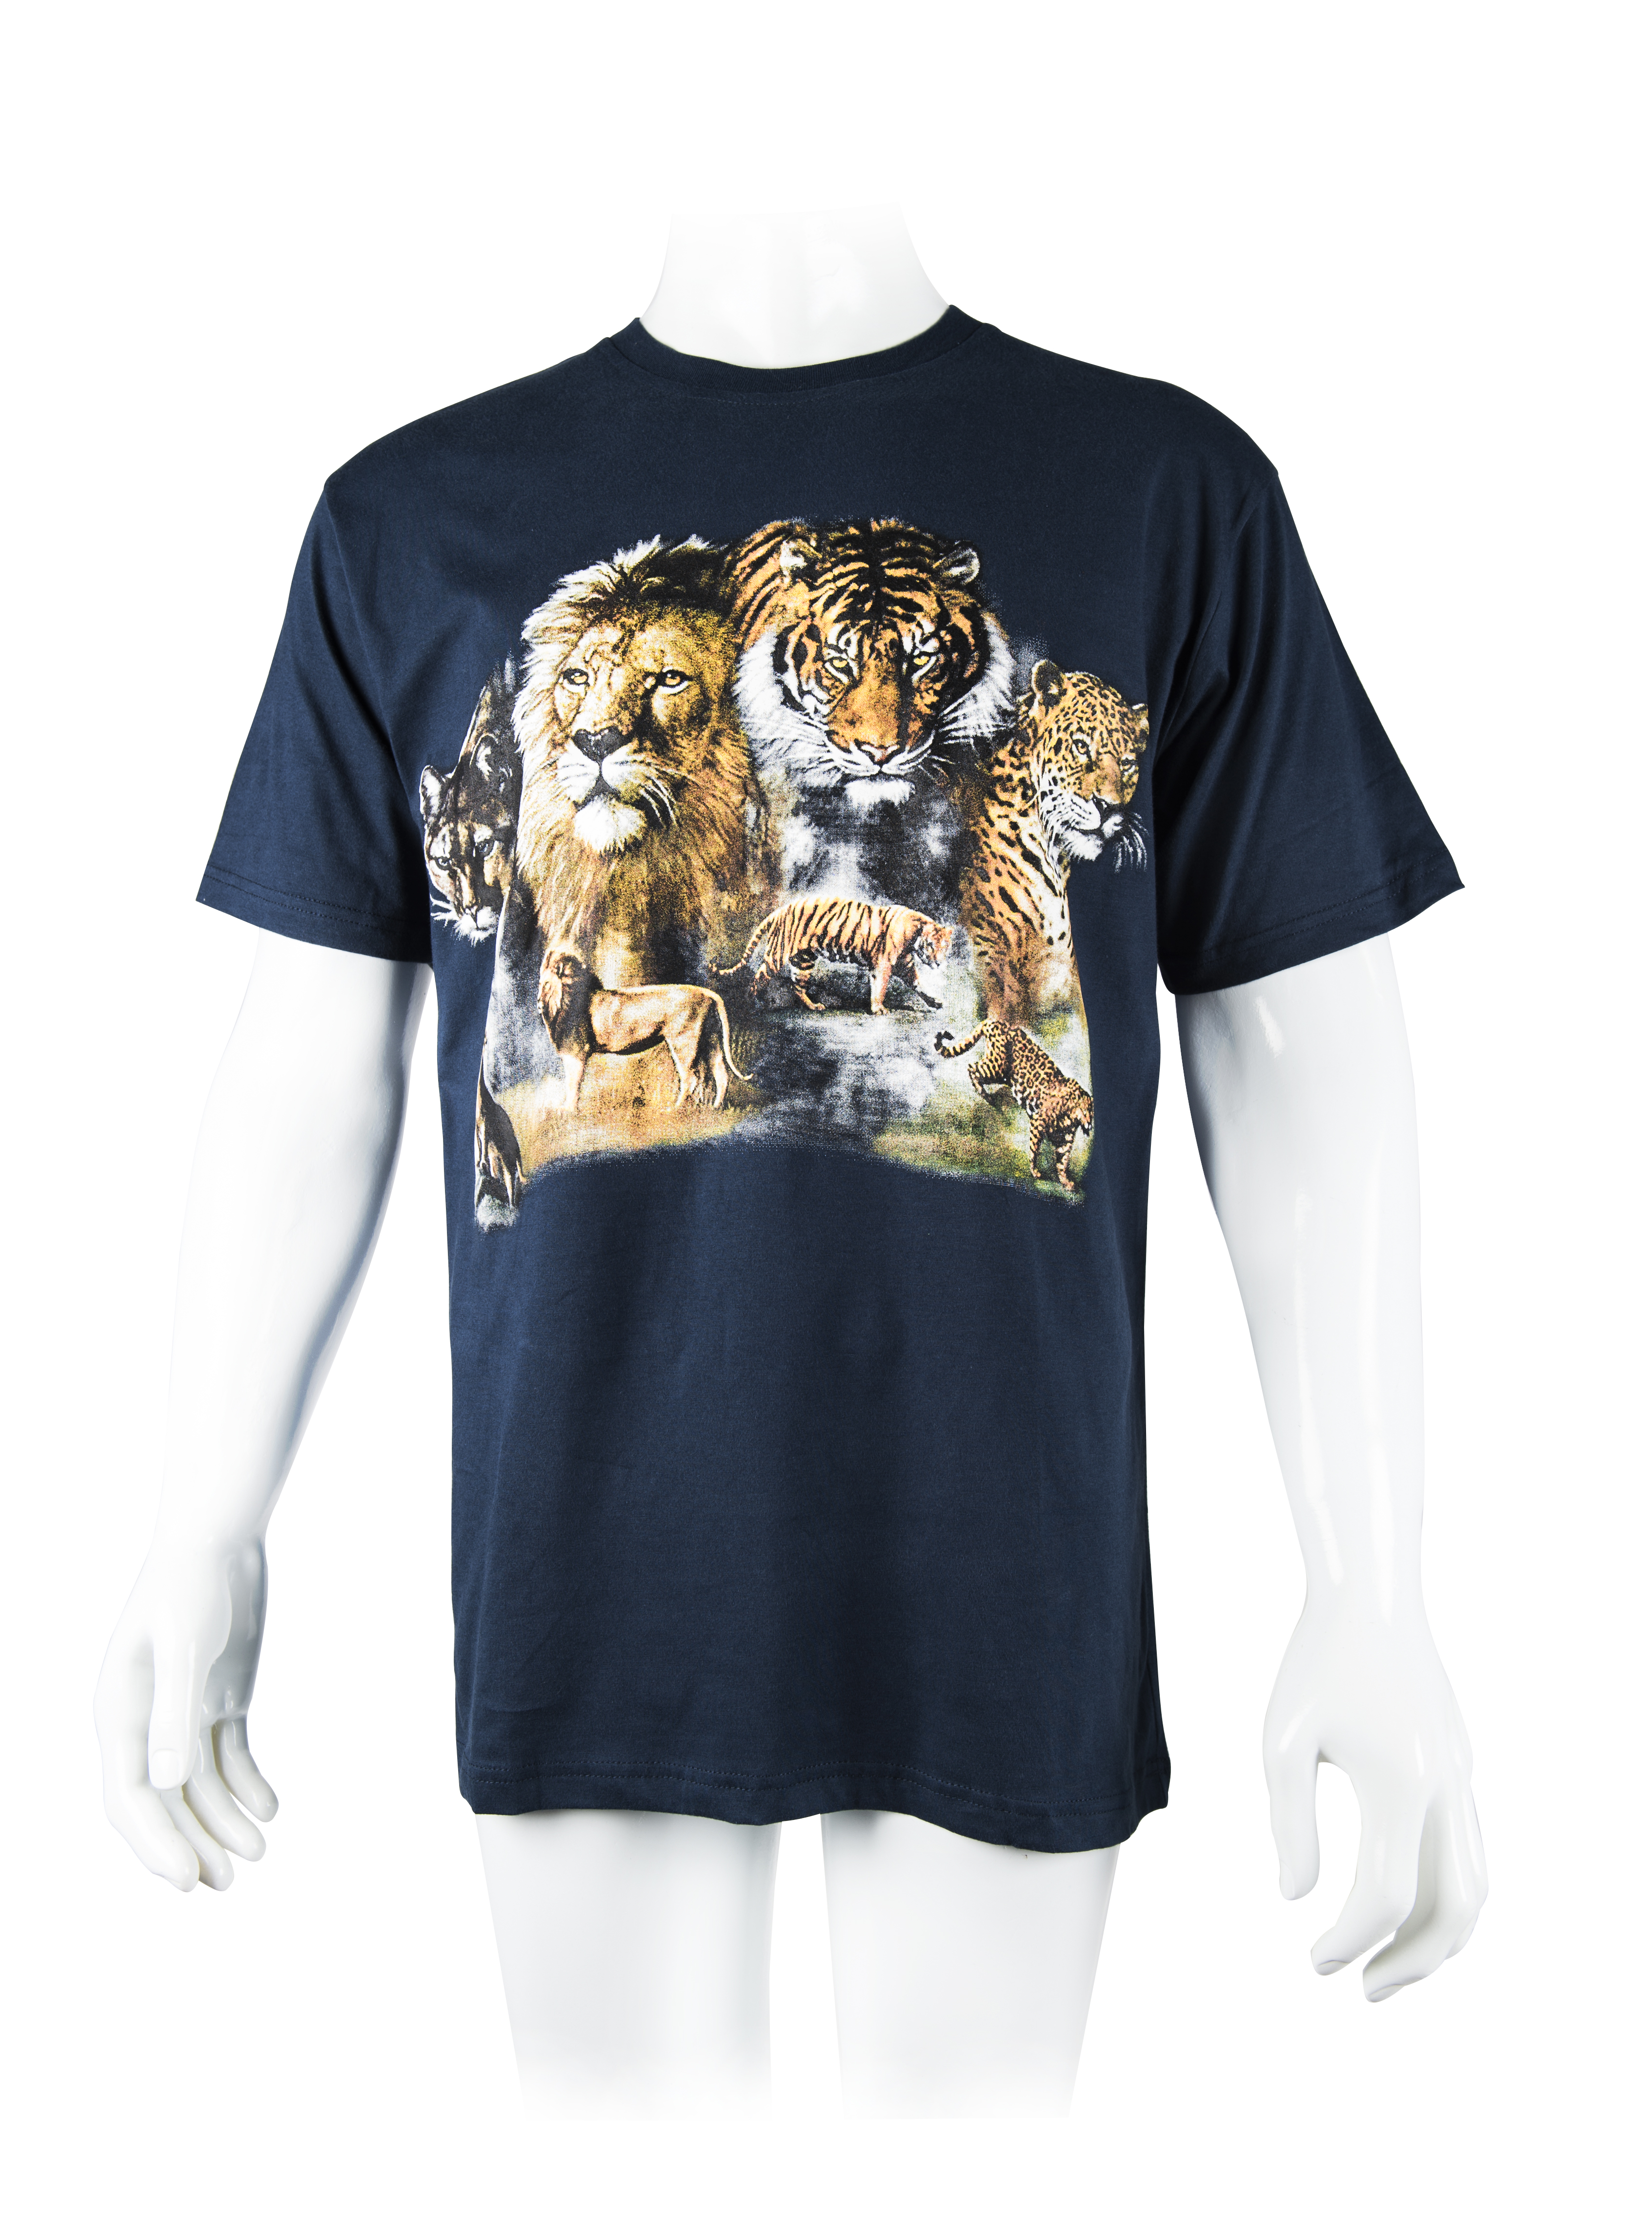 Tiger Family T-Shirt in Navy Blue L